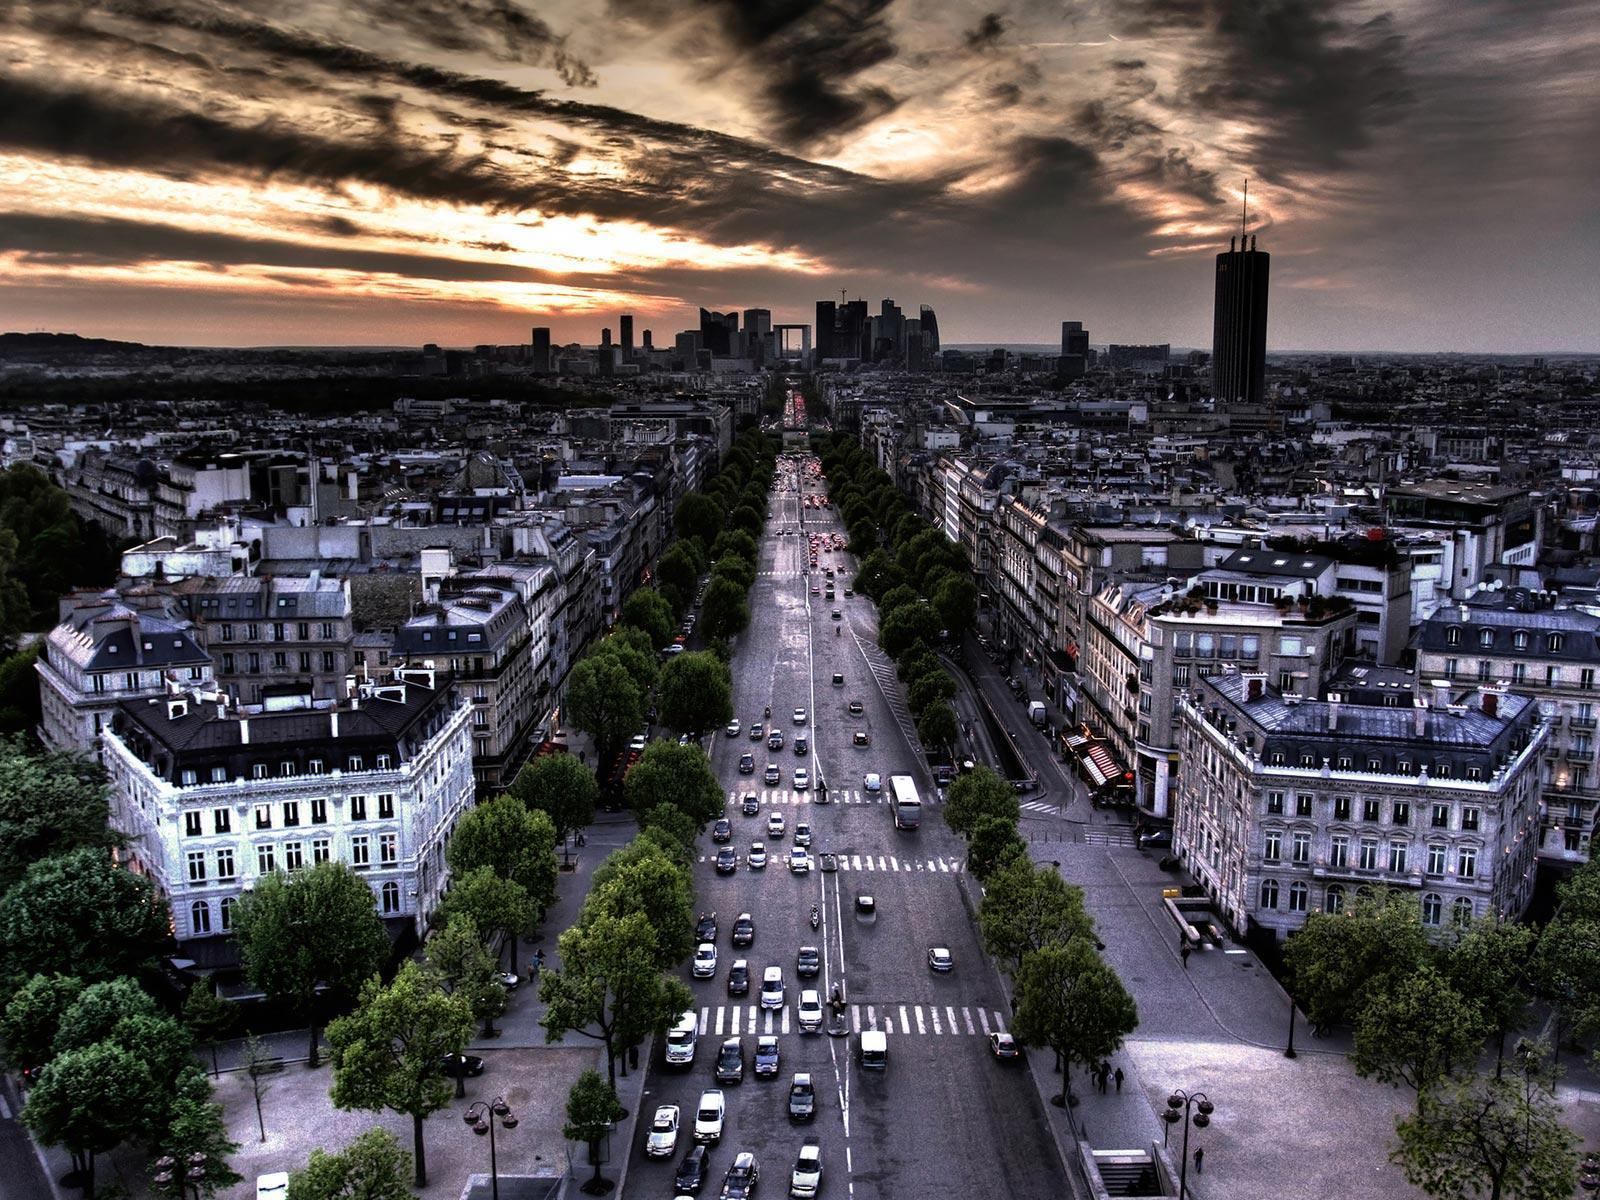 Champs Elysees, Paris, France wallpapers – wallpapers free download